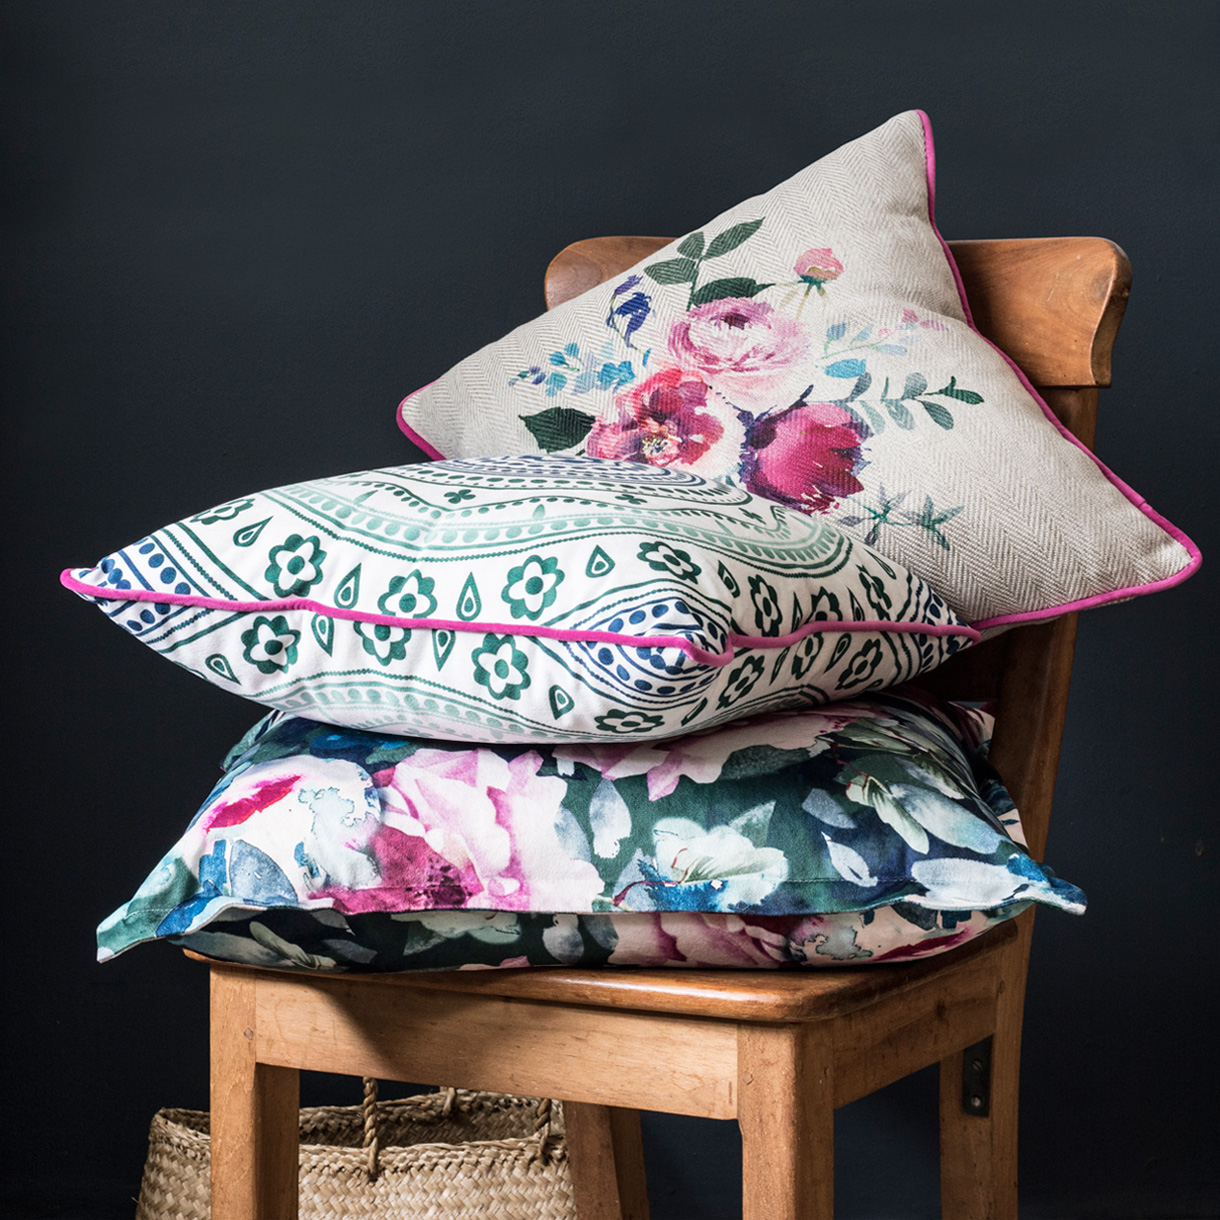 Principle brand agency Dublin Woodie's homewares brand design project cottage cushions on chair